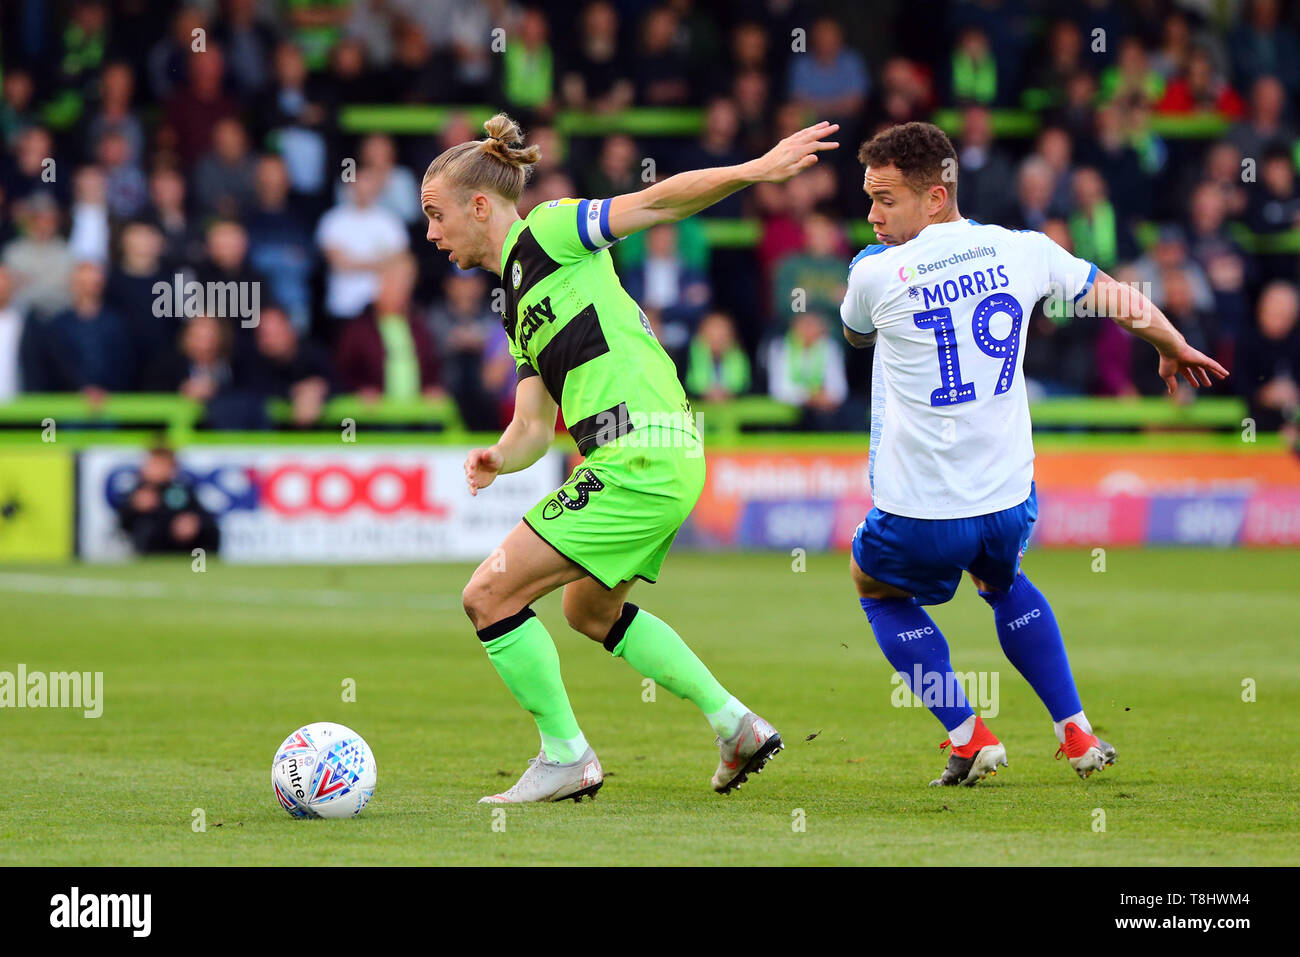 Nailsworth, UK. 13th May, 2019. Joseph Mills of Forest Green Rovers and Kieron Morris of Tranmere Rovers during the EFL Sky Bet League 2 Play Off Semi Final match between Forest Green Rovers and Tranmere Rovers at The New Lawn, Nailsworth, England on 13 May 2019. Photo by Dave Peters. Editorial use only, license required for commercial use. No use in betting, games or a single club/league/player publications. Credit: UK Sports Pics Ltd/Alamy Live News - Stock Image